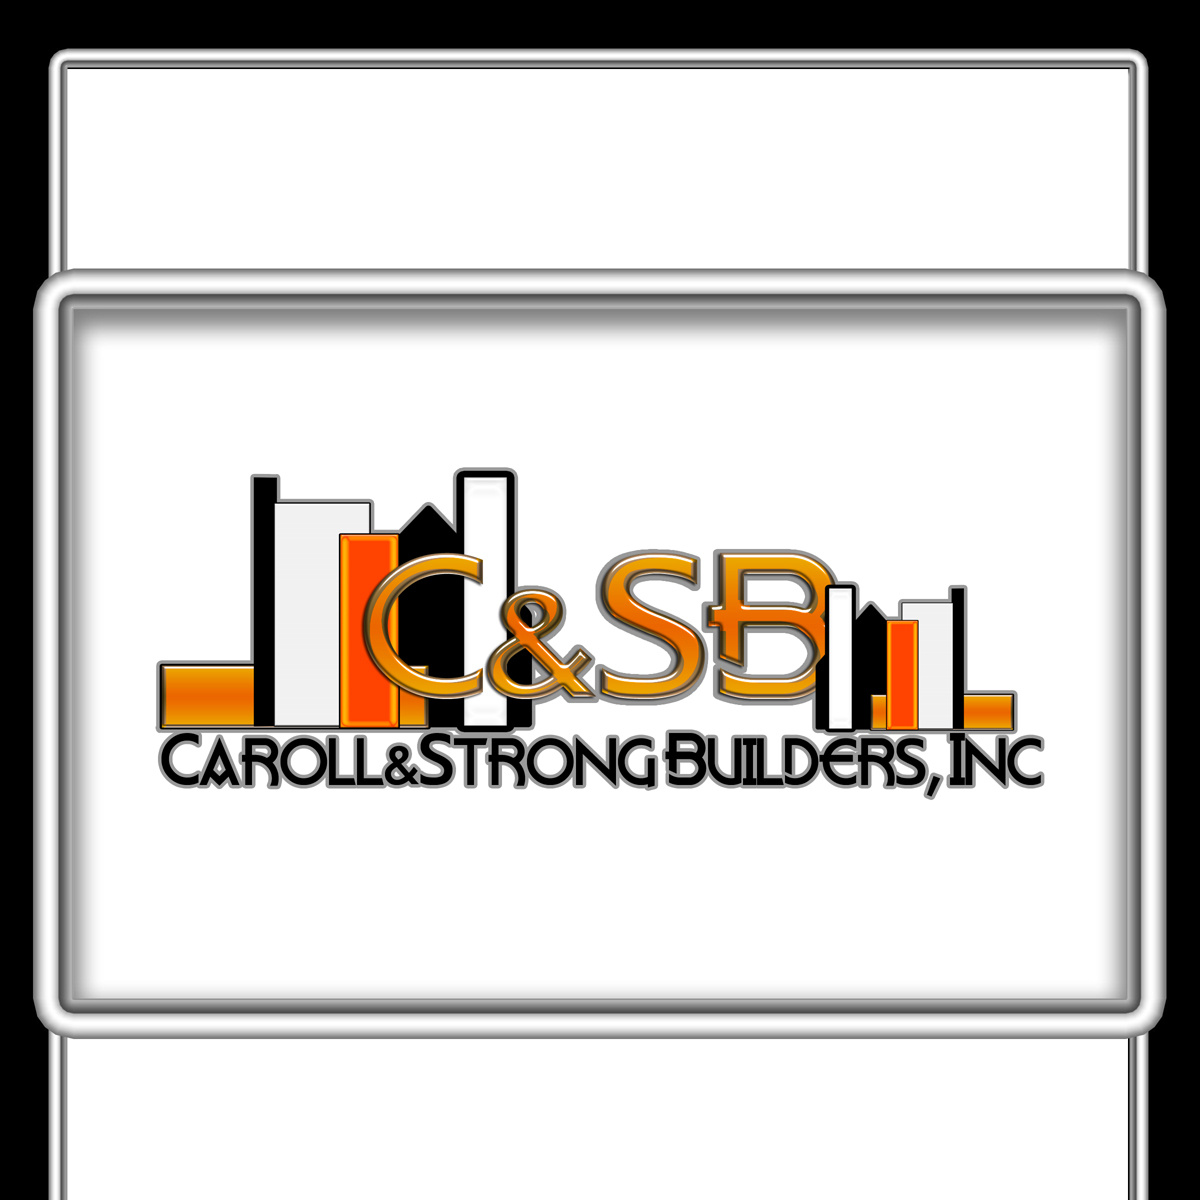 Logo Design by MITUCA ANDREI - Entry No. 16 in the Logo Design Contest New Logo Design for Carroll & Strong Builders, Inc..